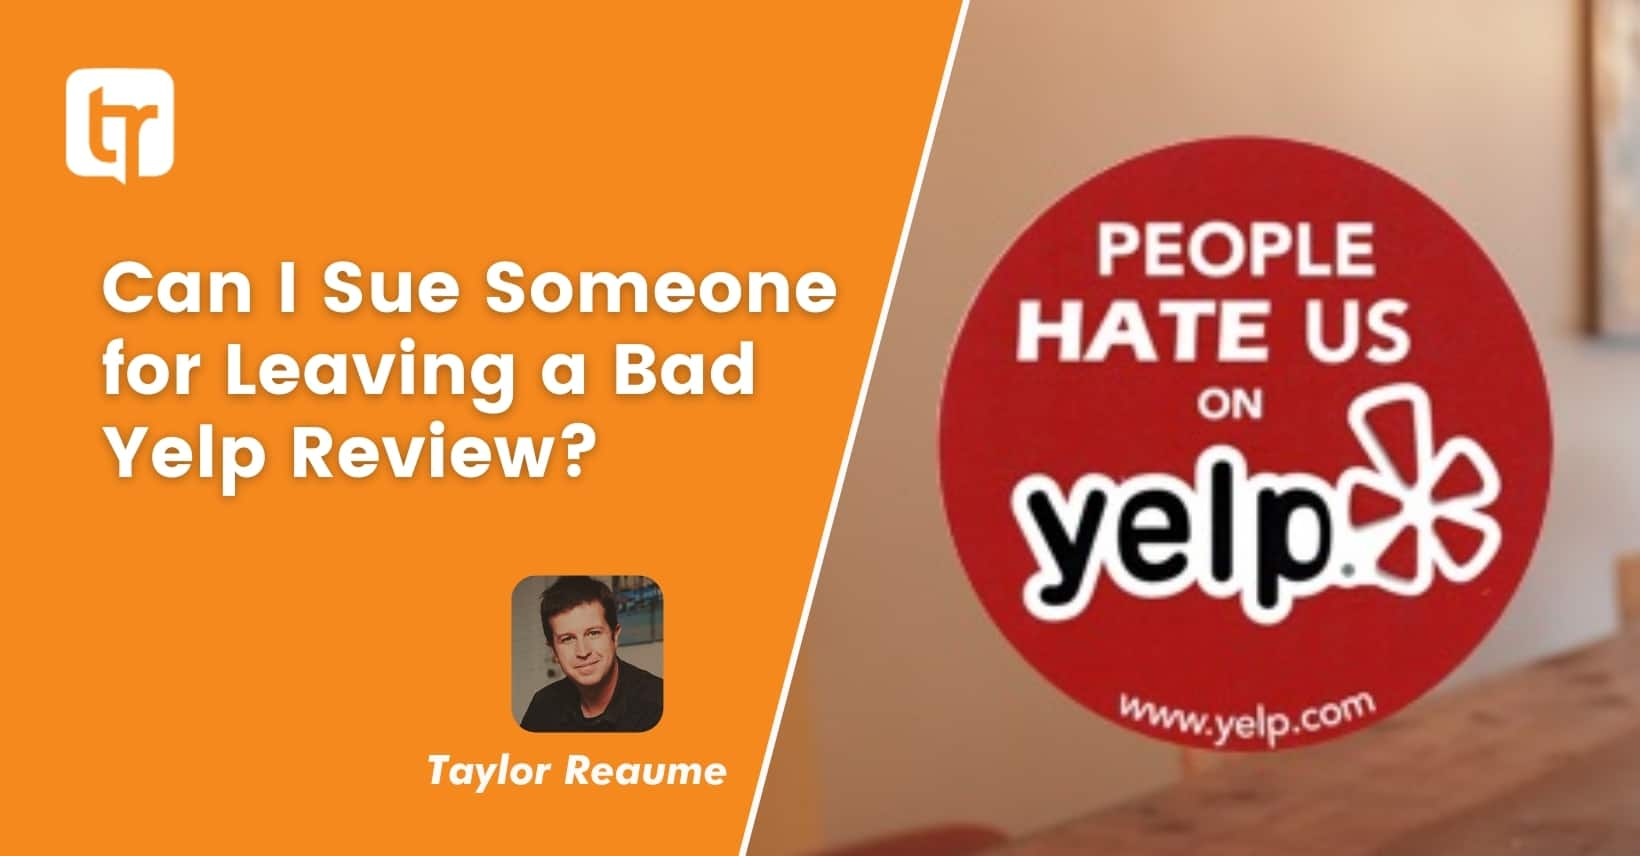 Can I Sue Someone for Leaving a Bad Yelp Review?